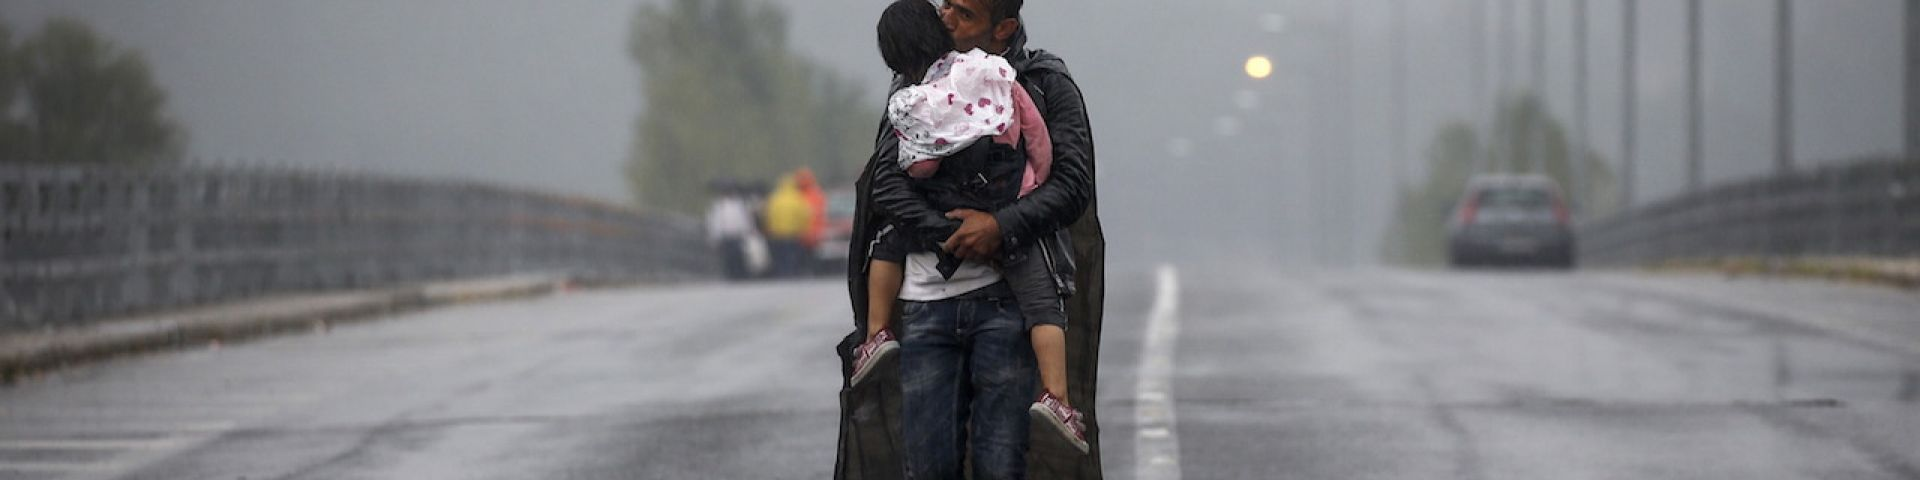 Yannis Behrakis photo of a refugee father carrying his child in the rain